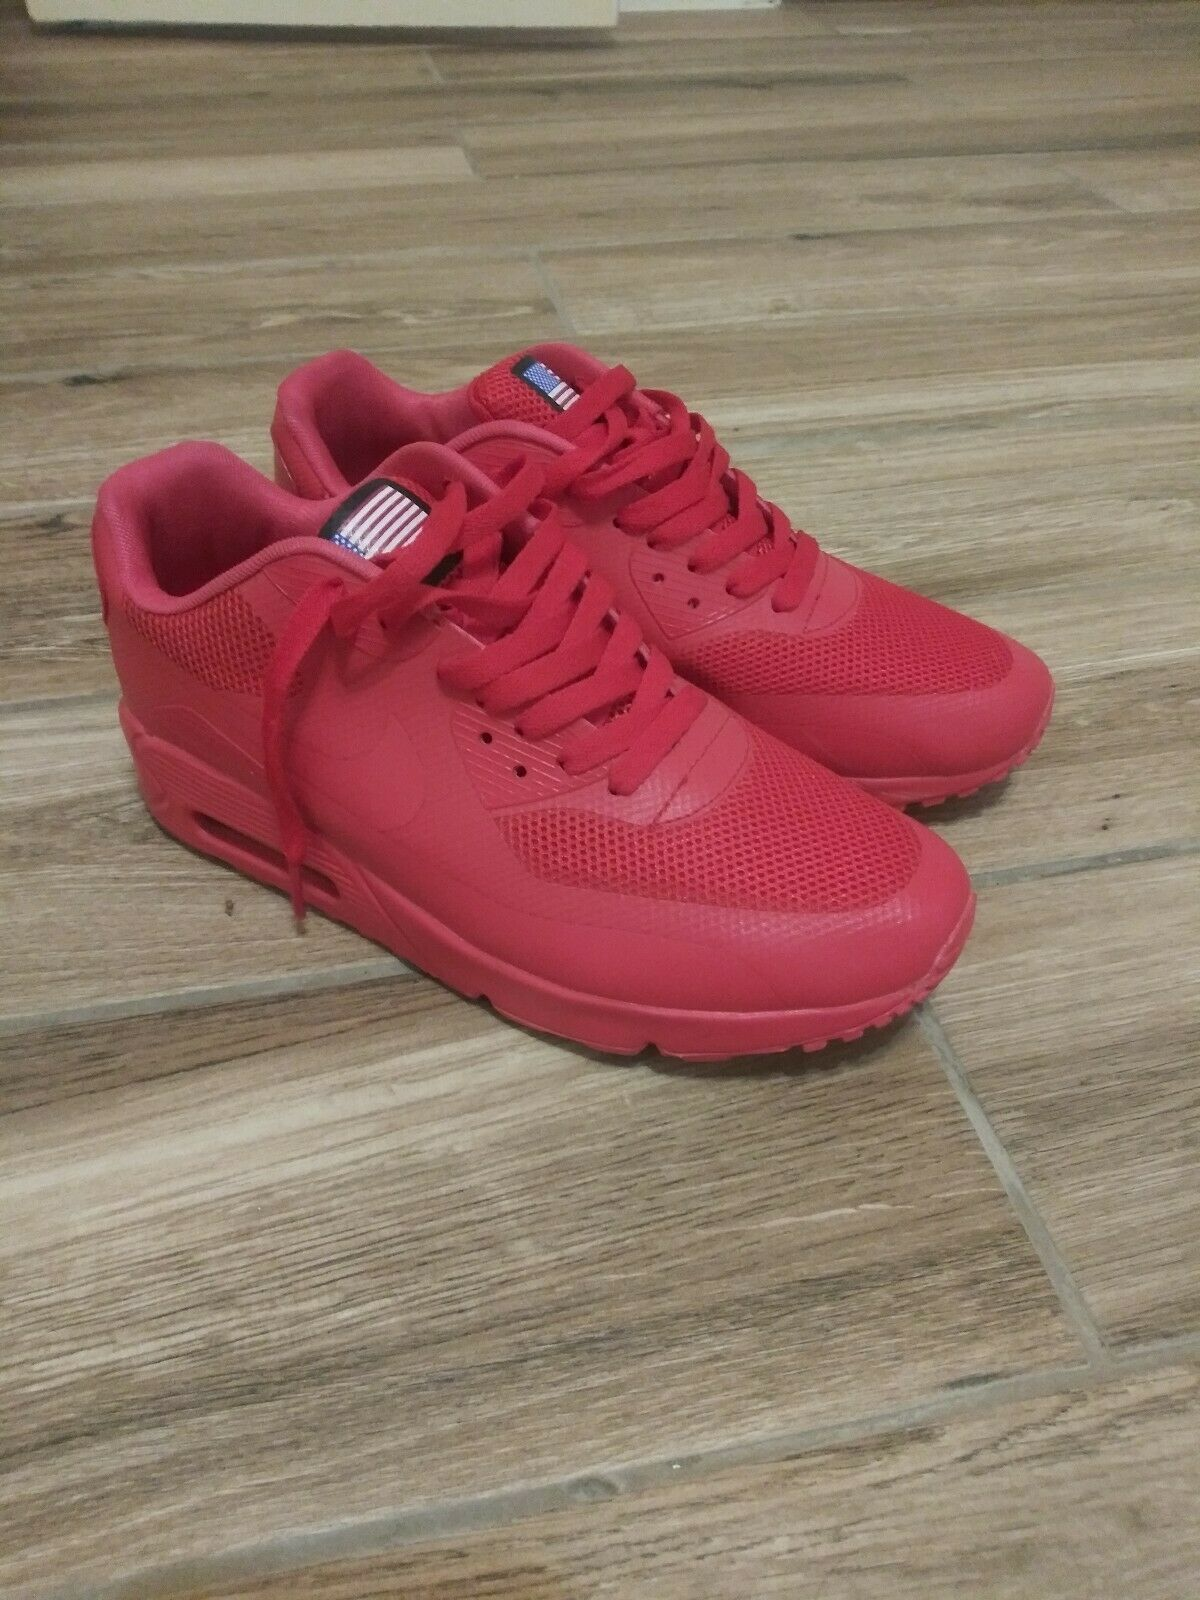 probable Carretilla soltar  Nike Air Max 90 Hyperfuse USA Red US 10.5 613841-660 2013 for sale online |  eBay